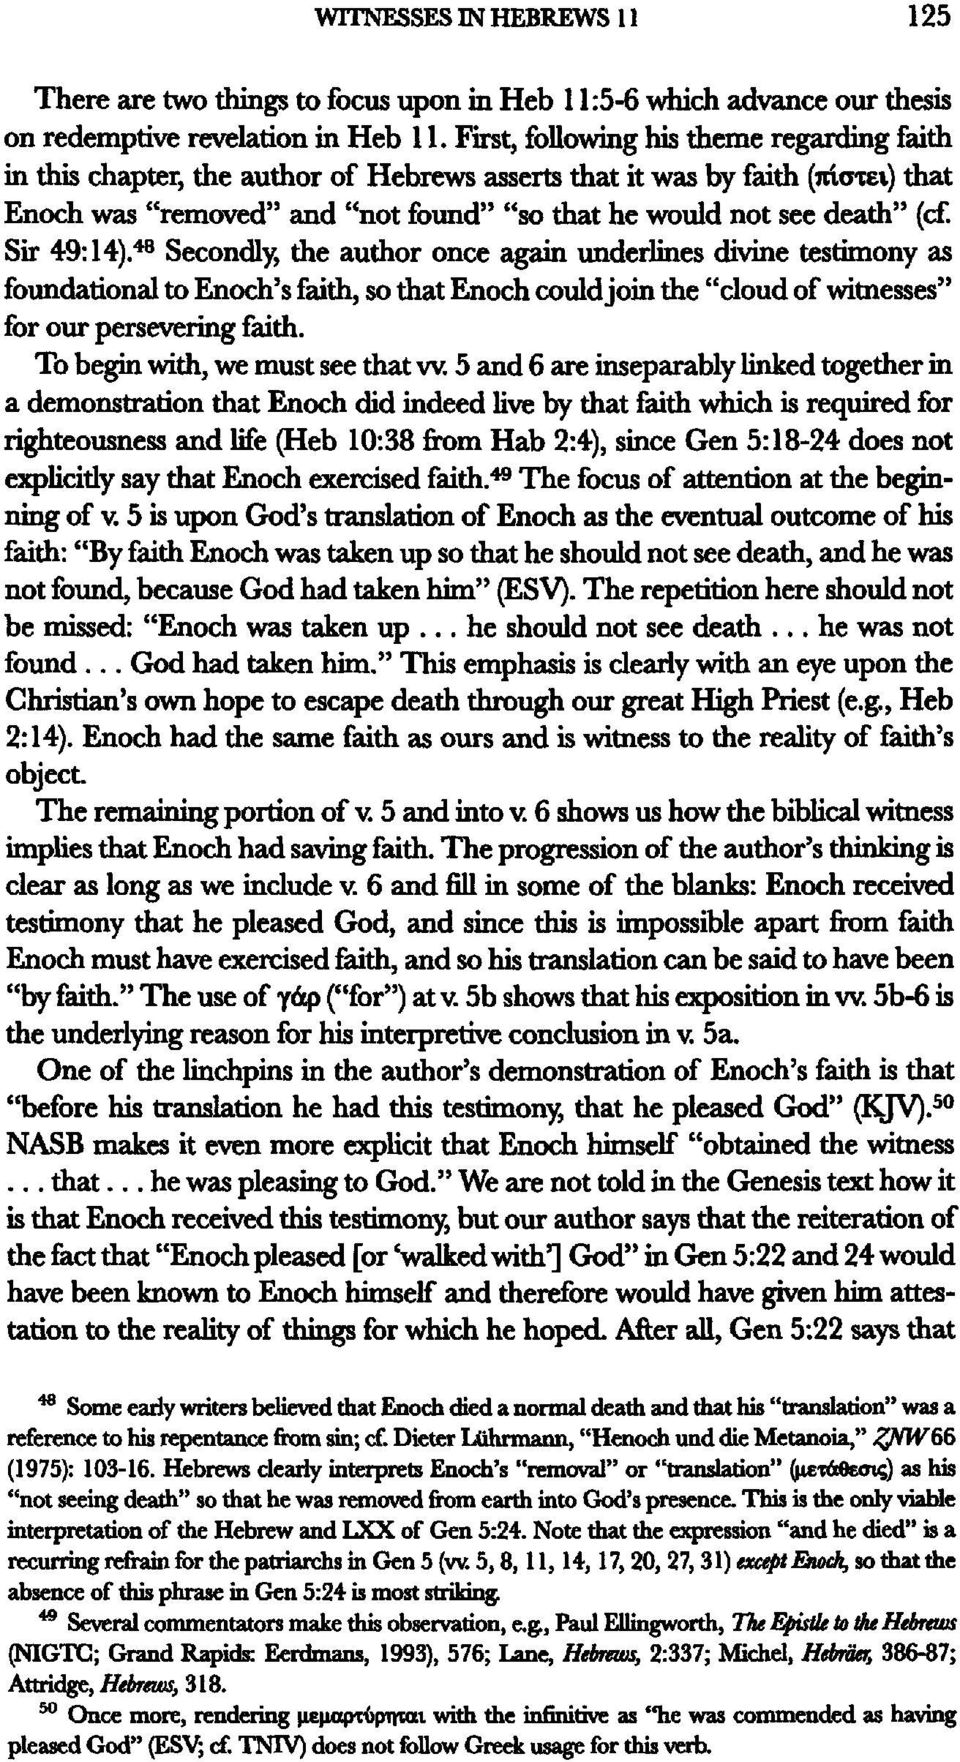 "Sir 49:14). 48 Secondly, the author once again underlines divine testimony as foundational to Enoch's faith, so that Enoch could join the ""cloud of witnesses"" for our persevering faith."